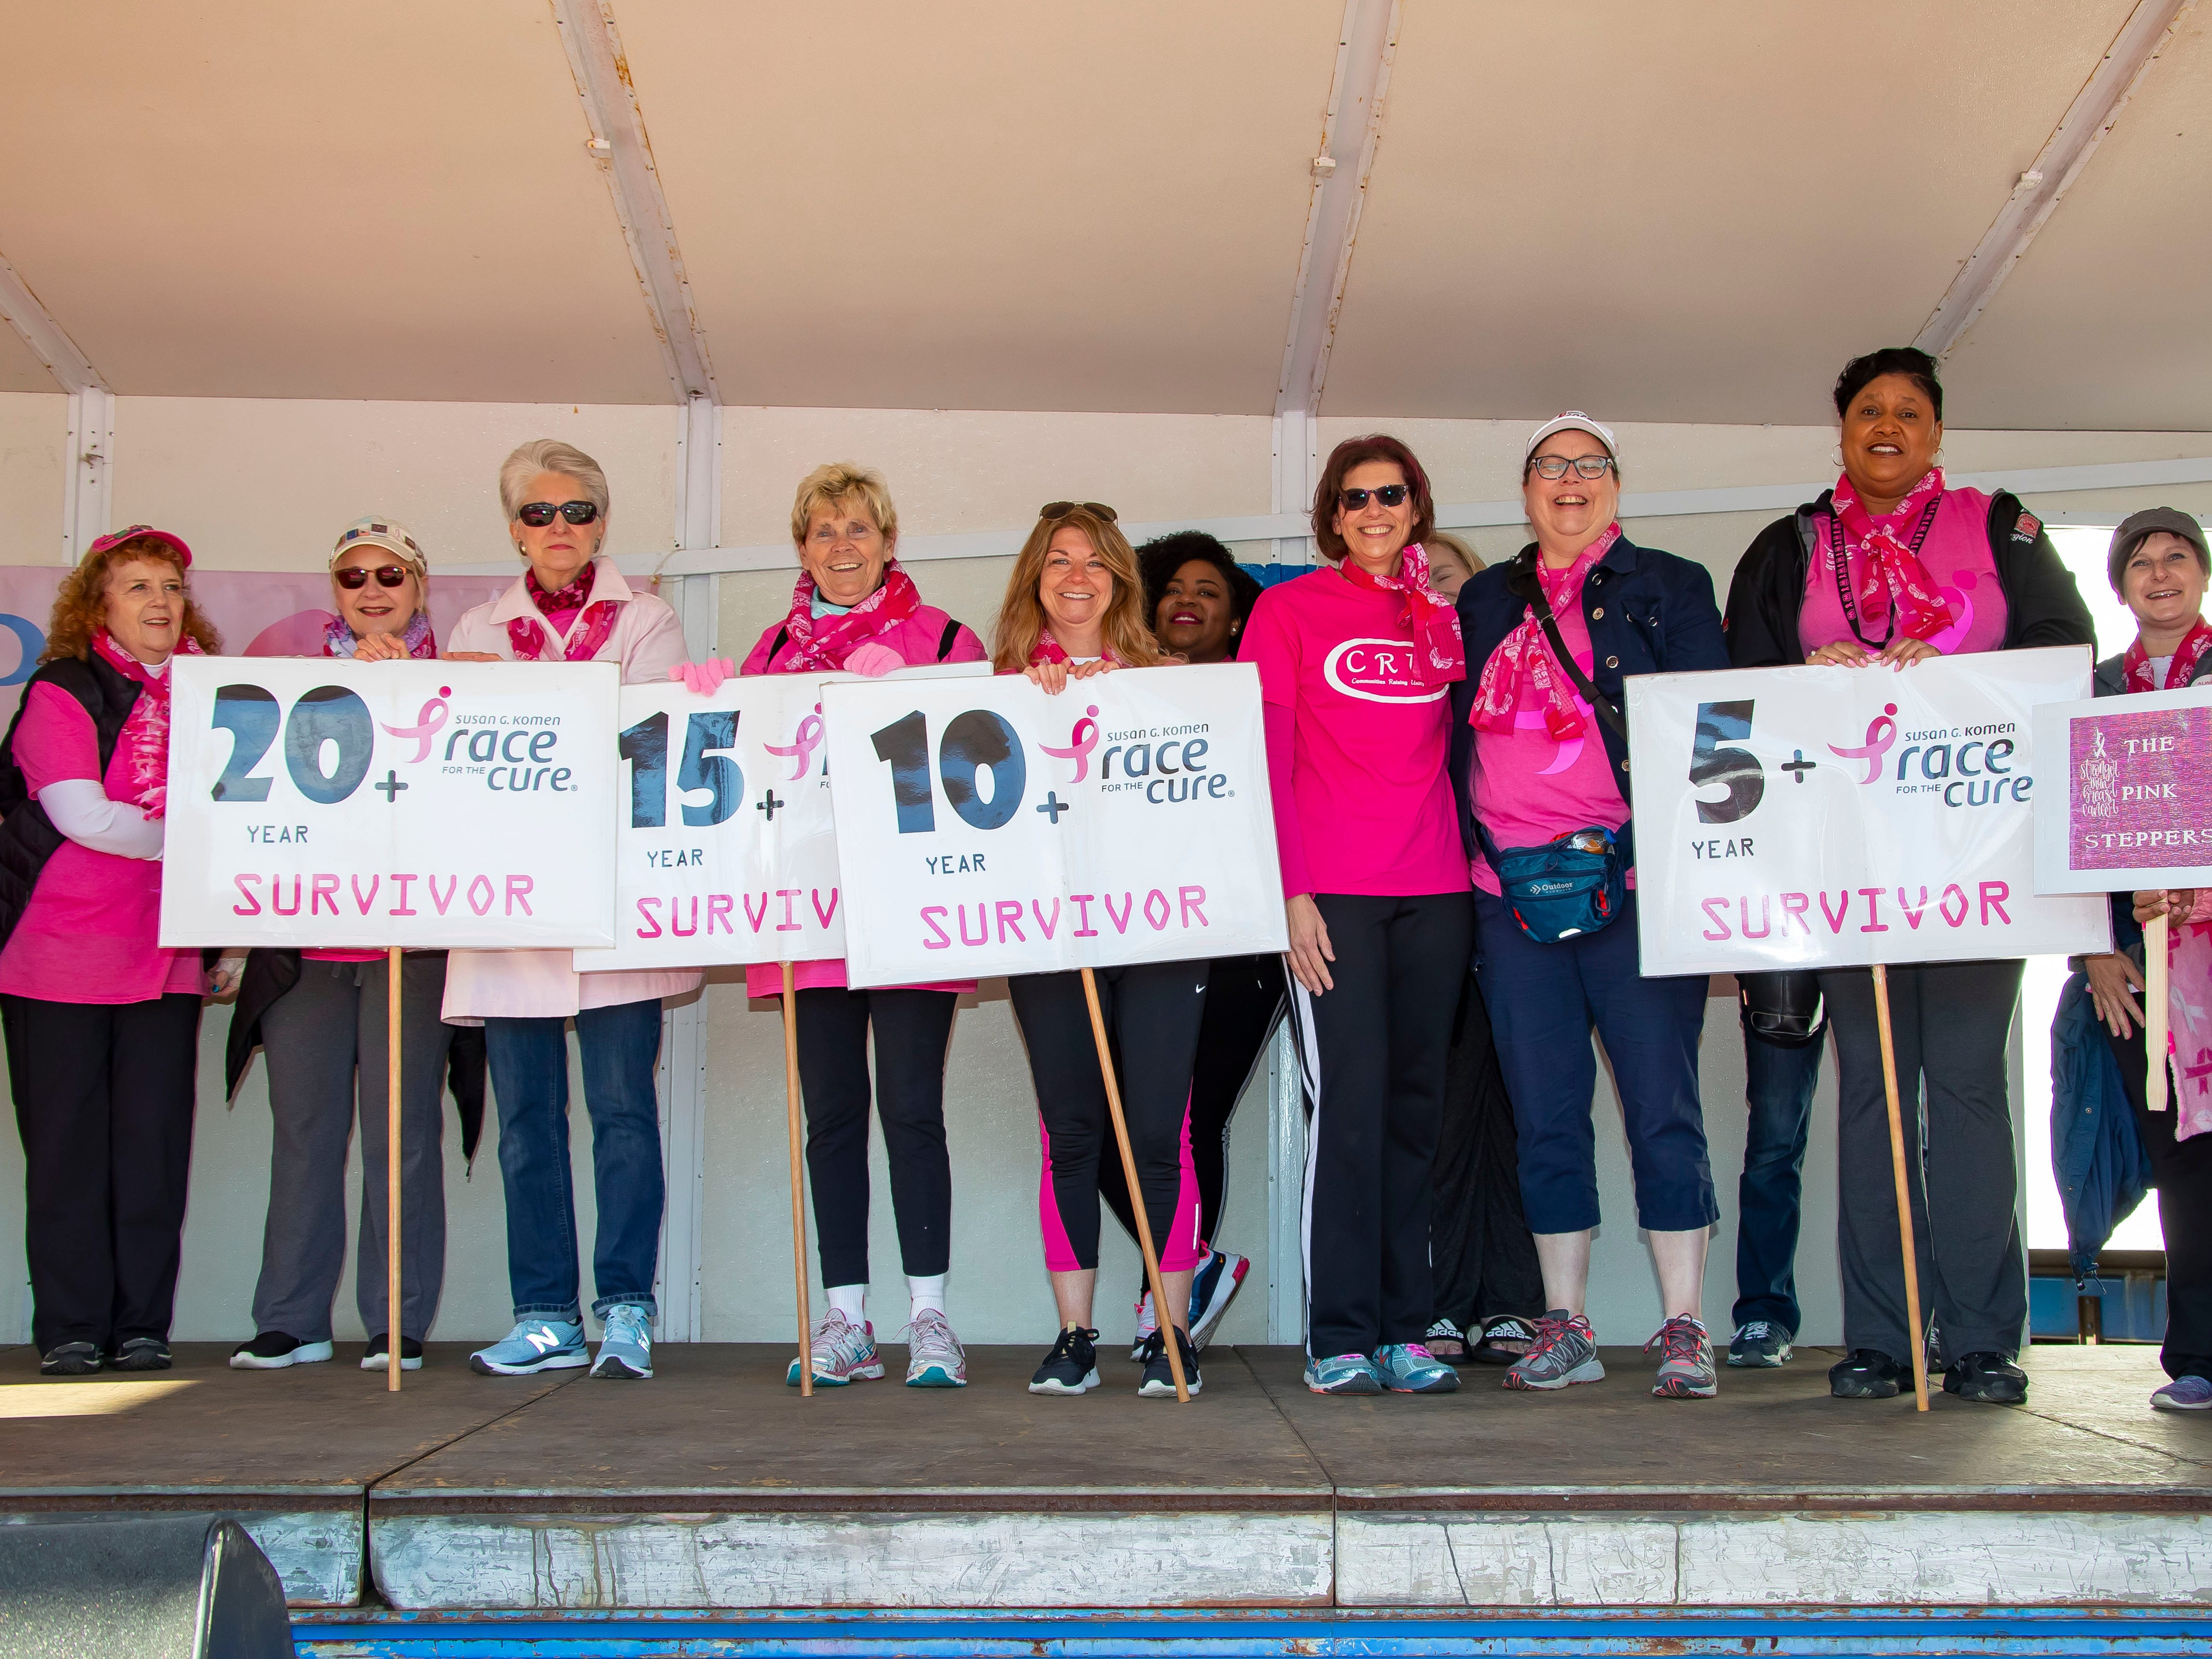 Cancer survivors are recognized on stage during the Susan G. Komen Race for the Cure at Comerica Park in Detroit Michigan. (Photo by Dave Reginek-Special to Detroit News)